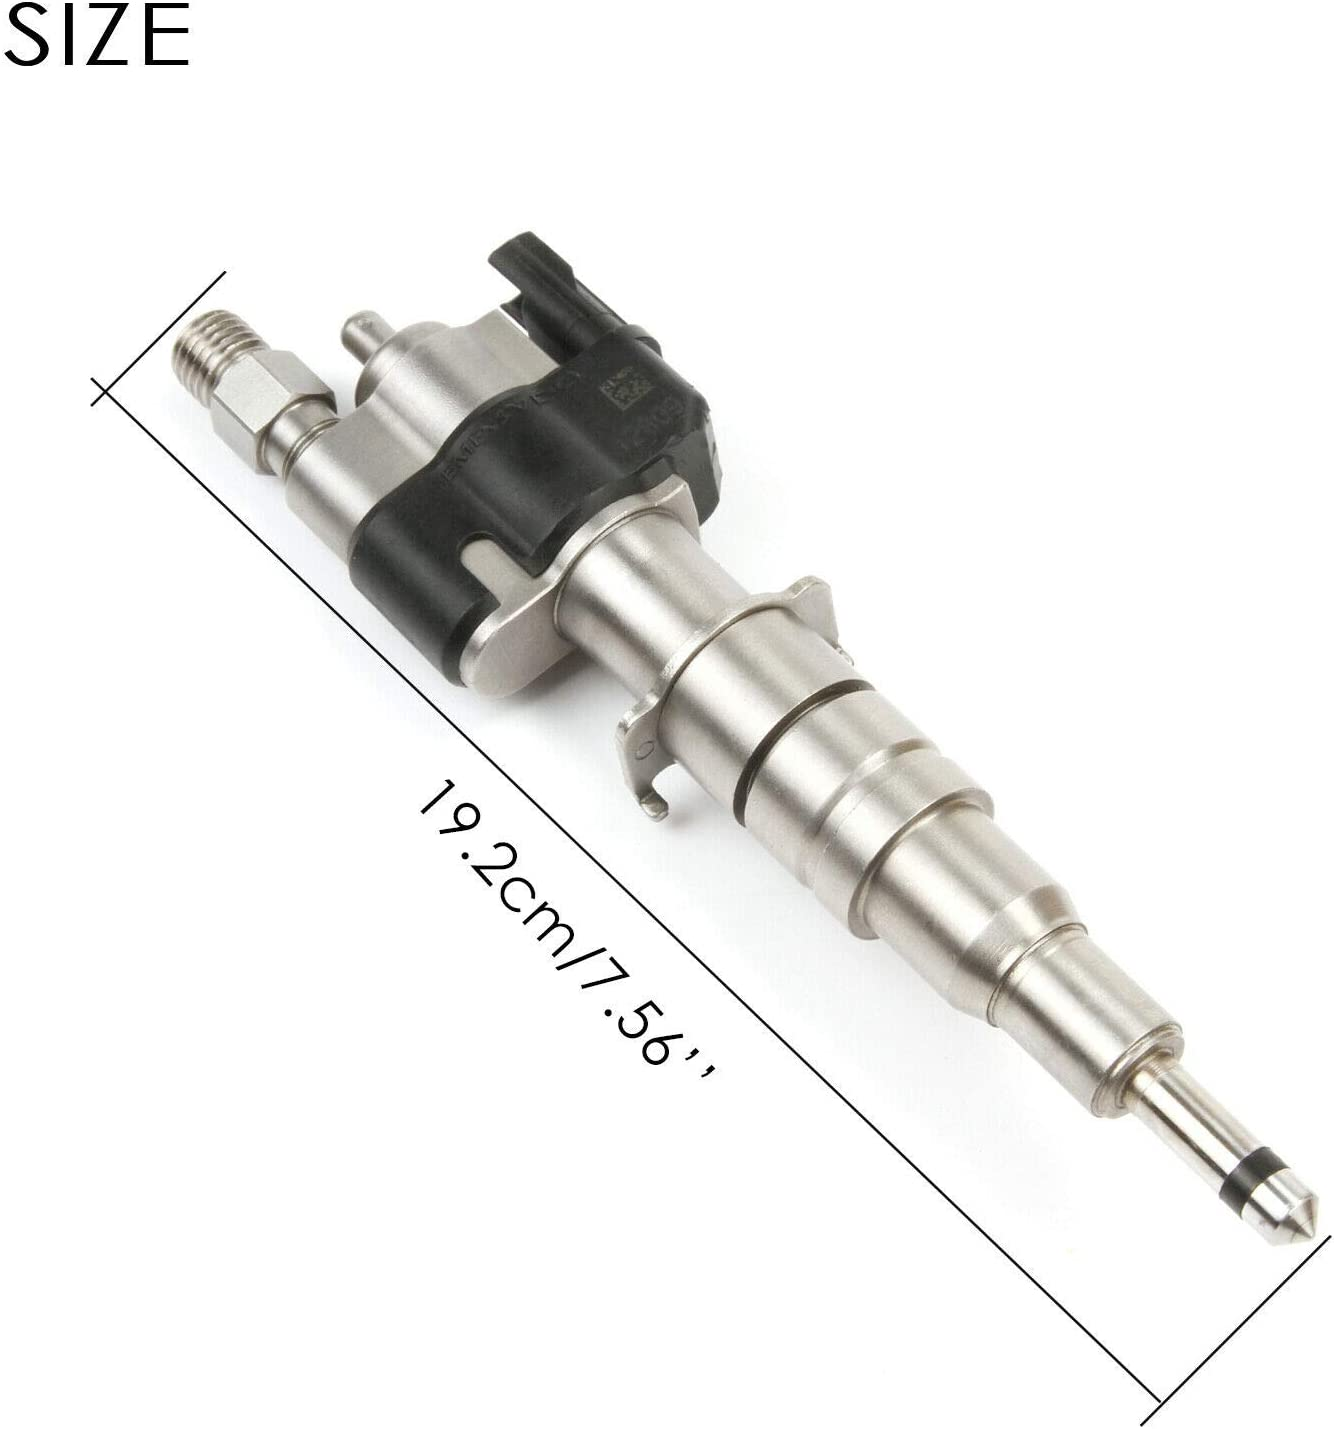 sportuli Fuel Injector Replacement for B-MW N54 N63 135 335 535 550 750 X5 X6 13537585261-09 13537585261